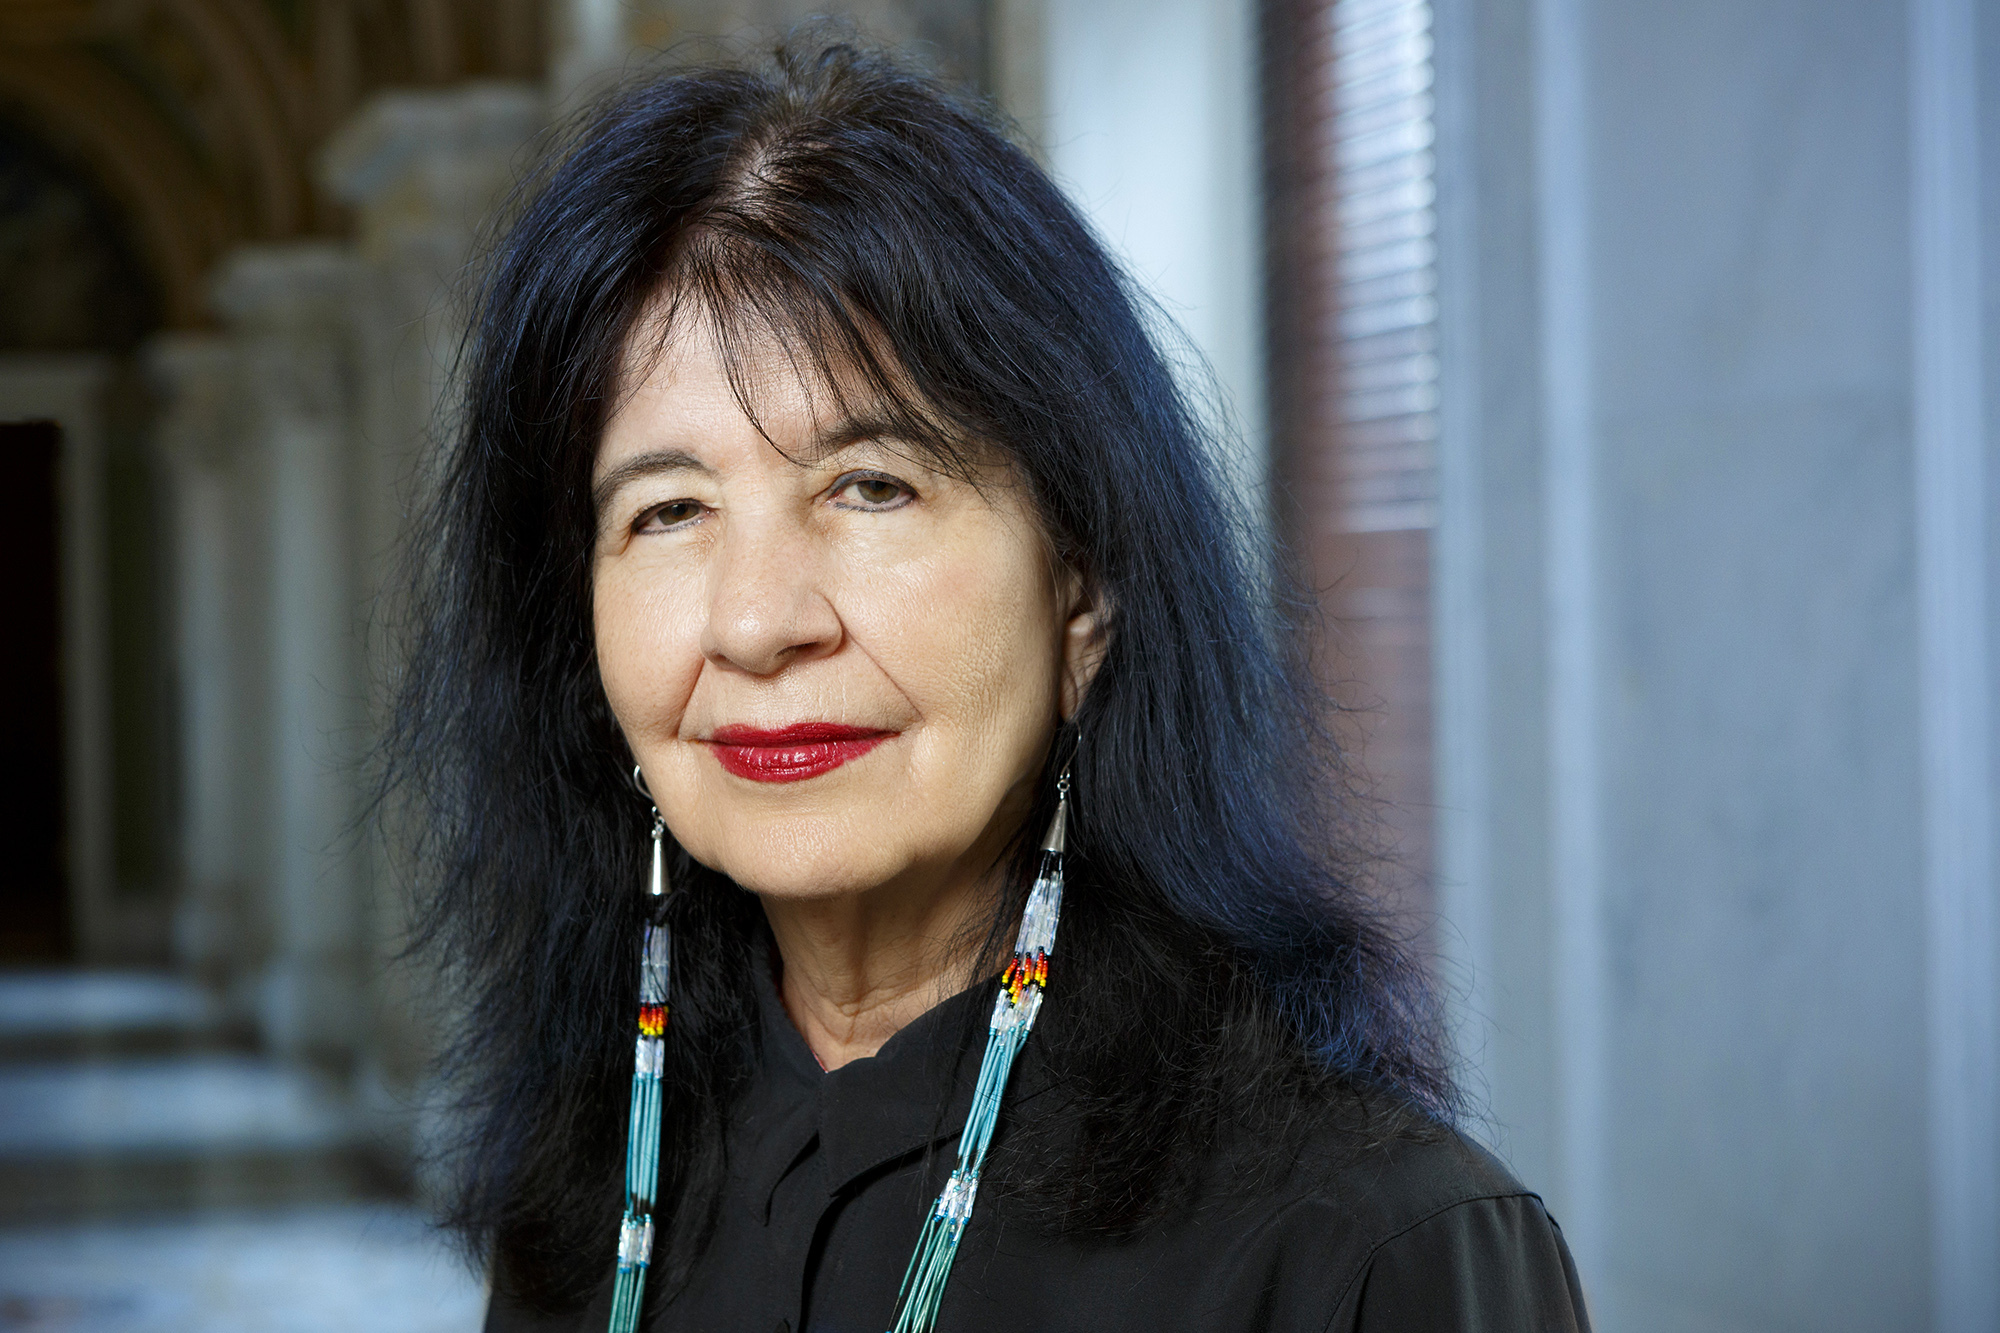 Joy Harjo has been named Poet Laureate of the United States. Photo by Shawn Miller